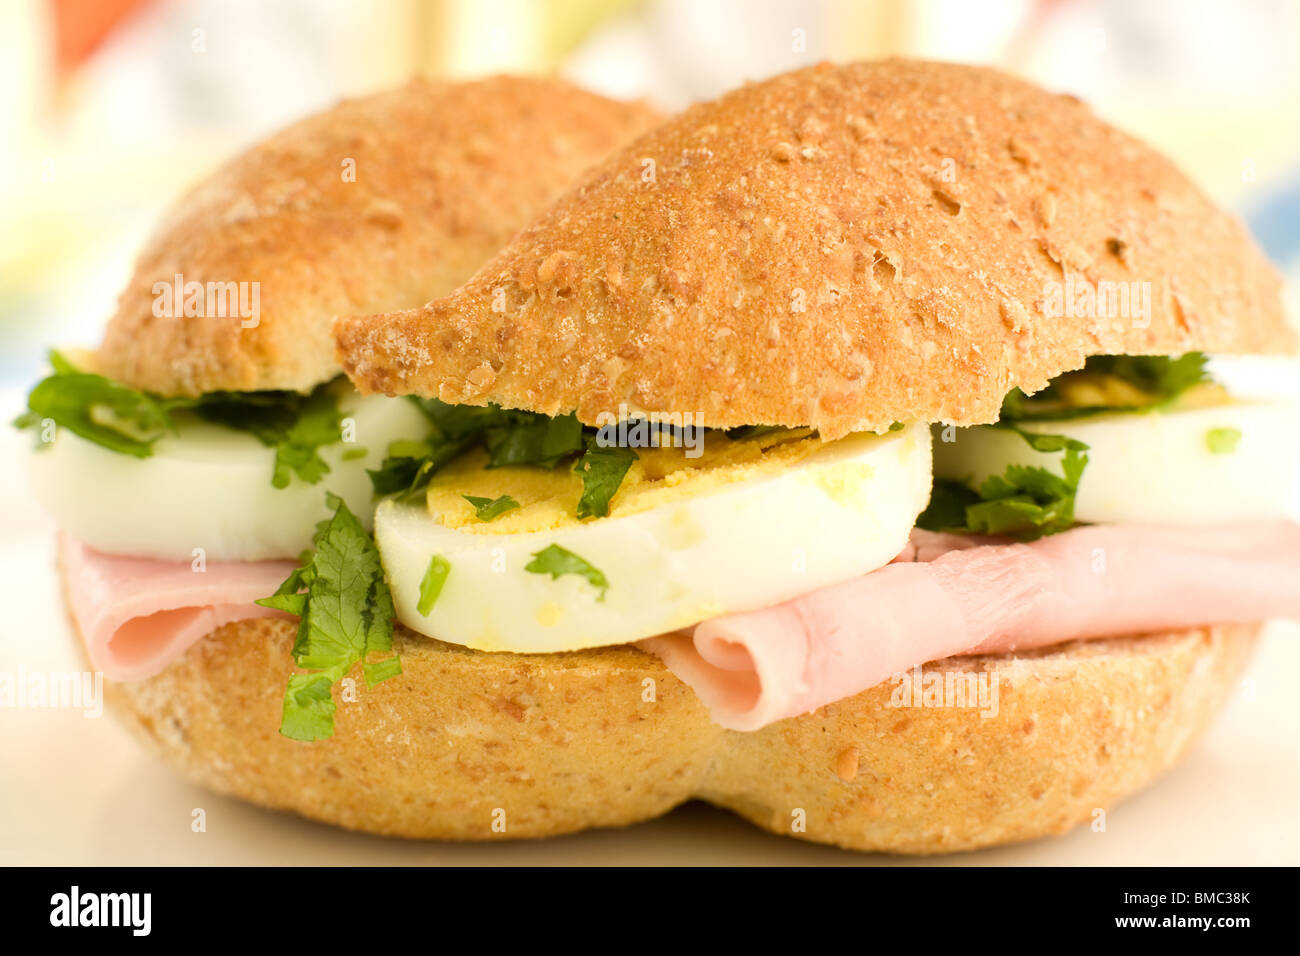 Sandwich of ham and eggs - Stock Image